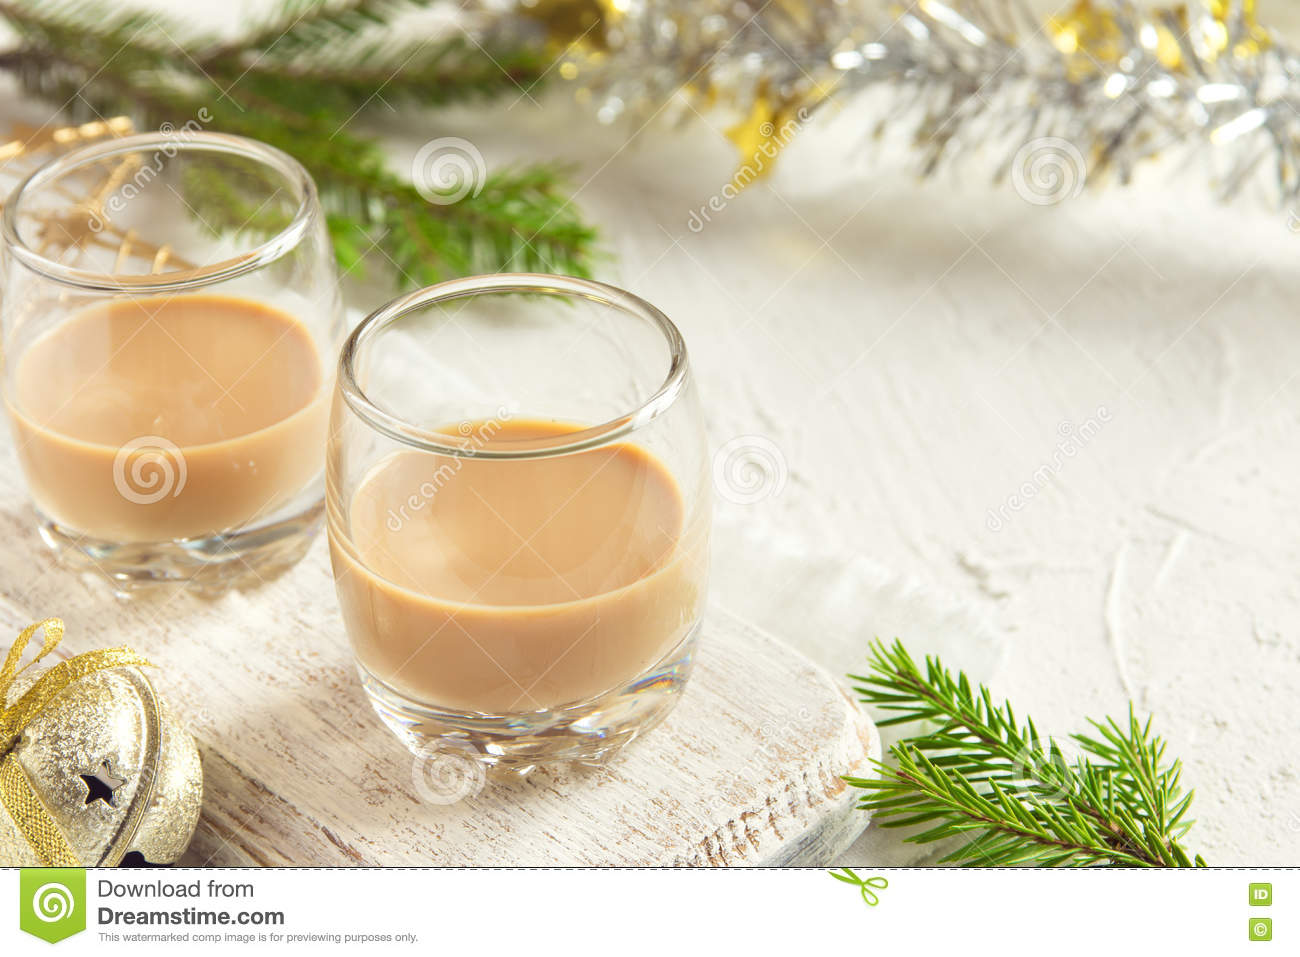 Irish Cream Coffee Liqueur For Christmas Stock Image - Image of ...